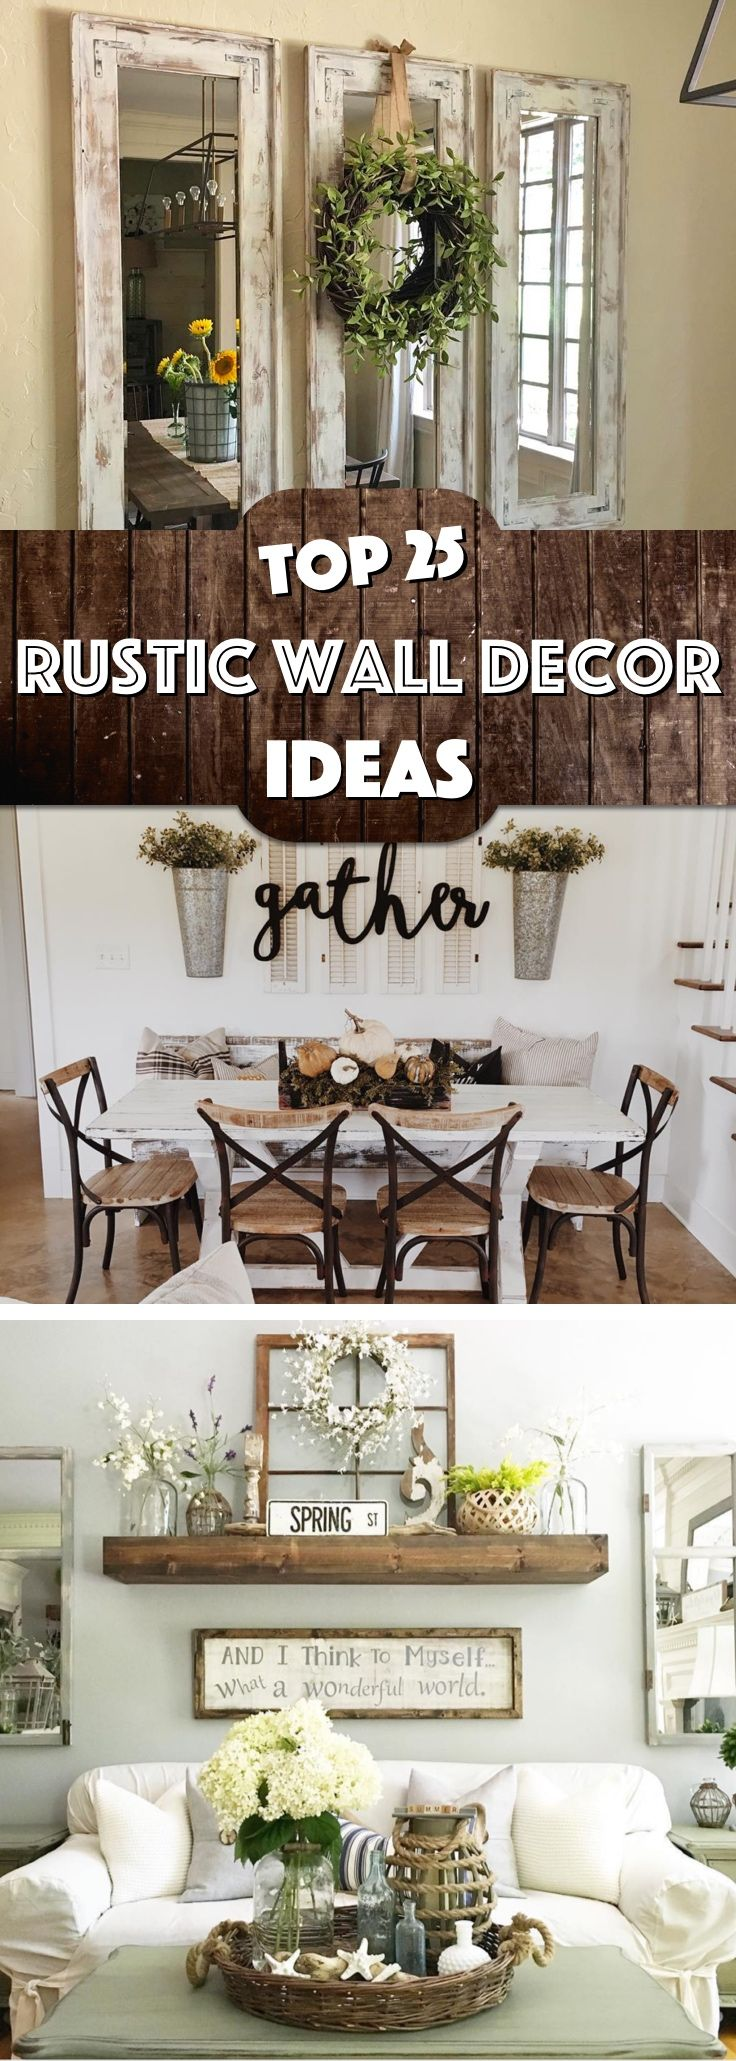 25 must try rustic wall decor ideas featuring the most amazing rh pinterest com